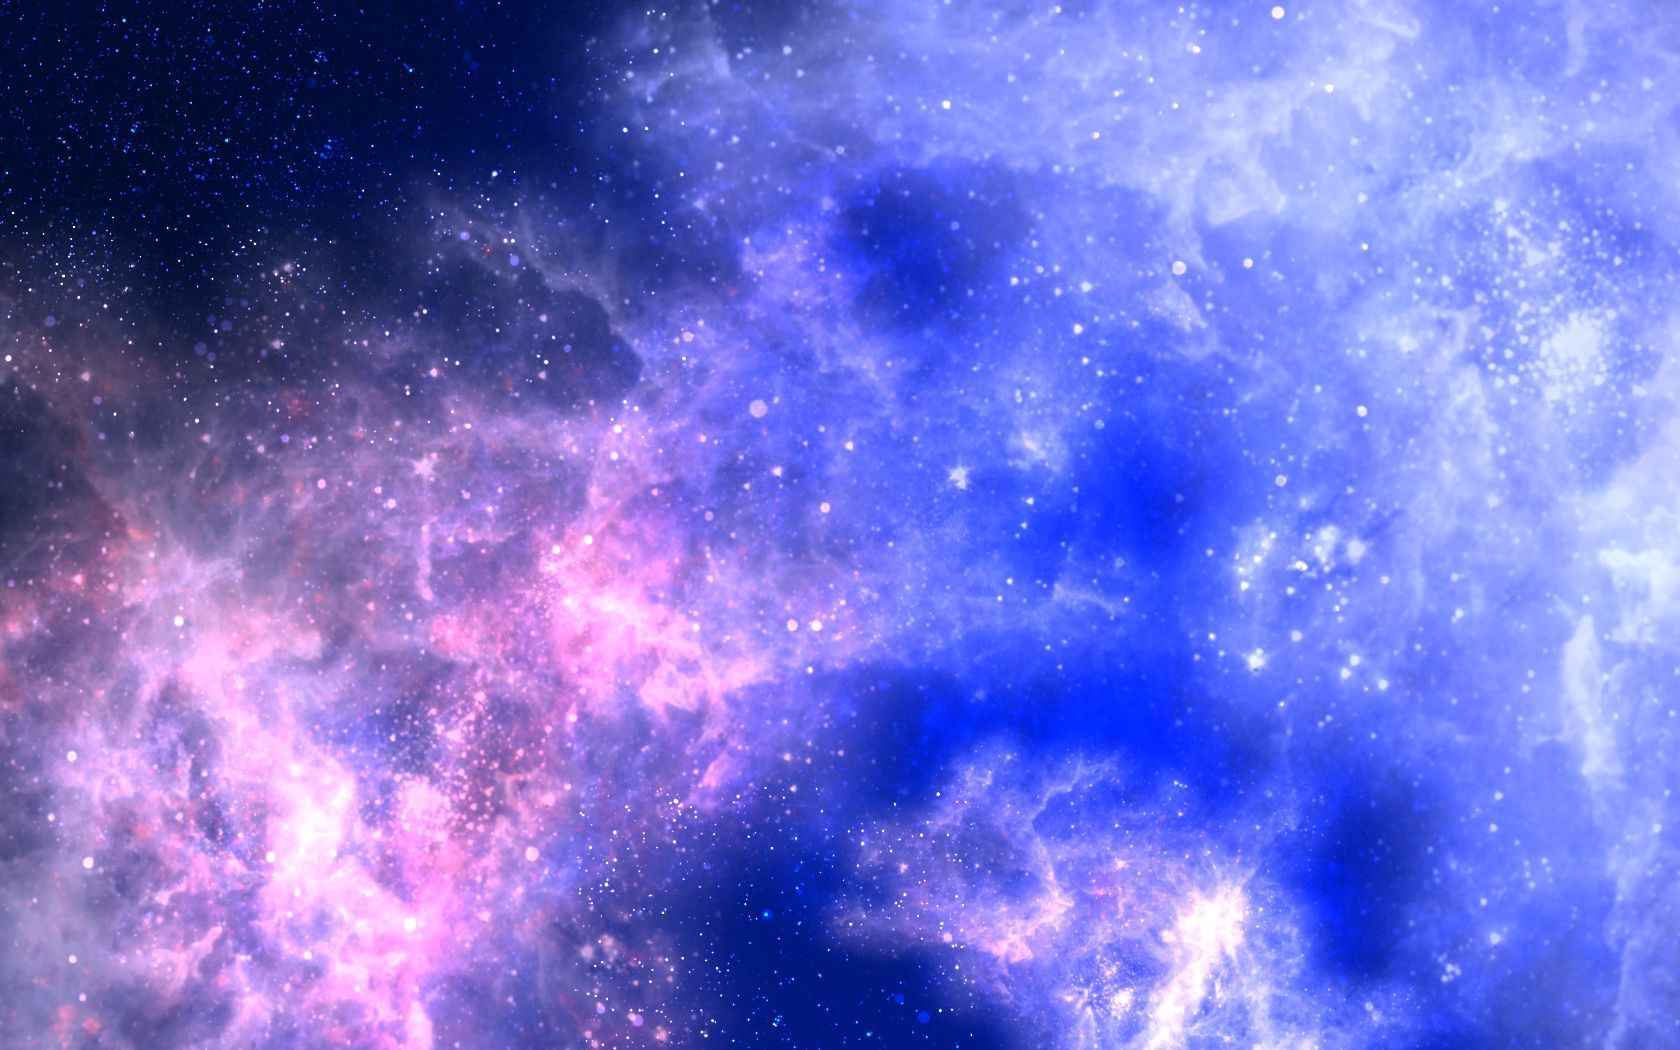 143834 download wallpaper Galaxy, Shining, Shine, Light, Stars, Universe screensavers and pictures for free